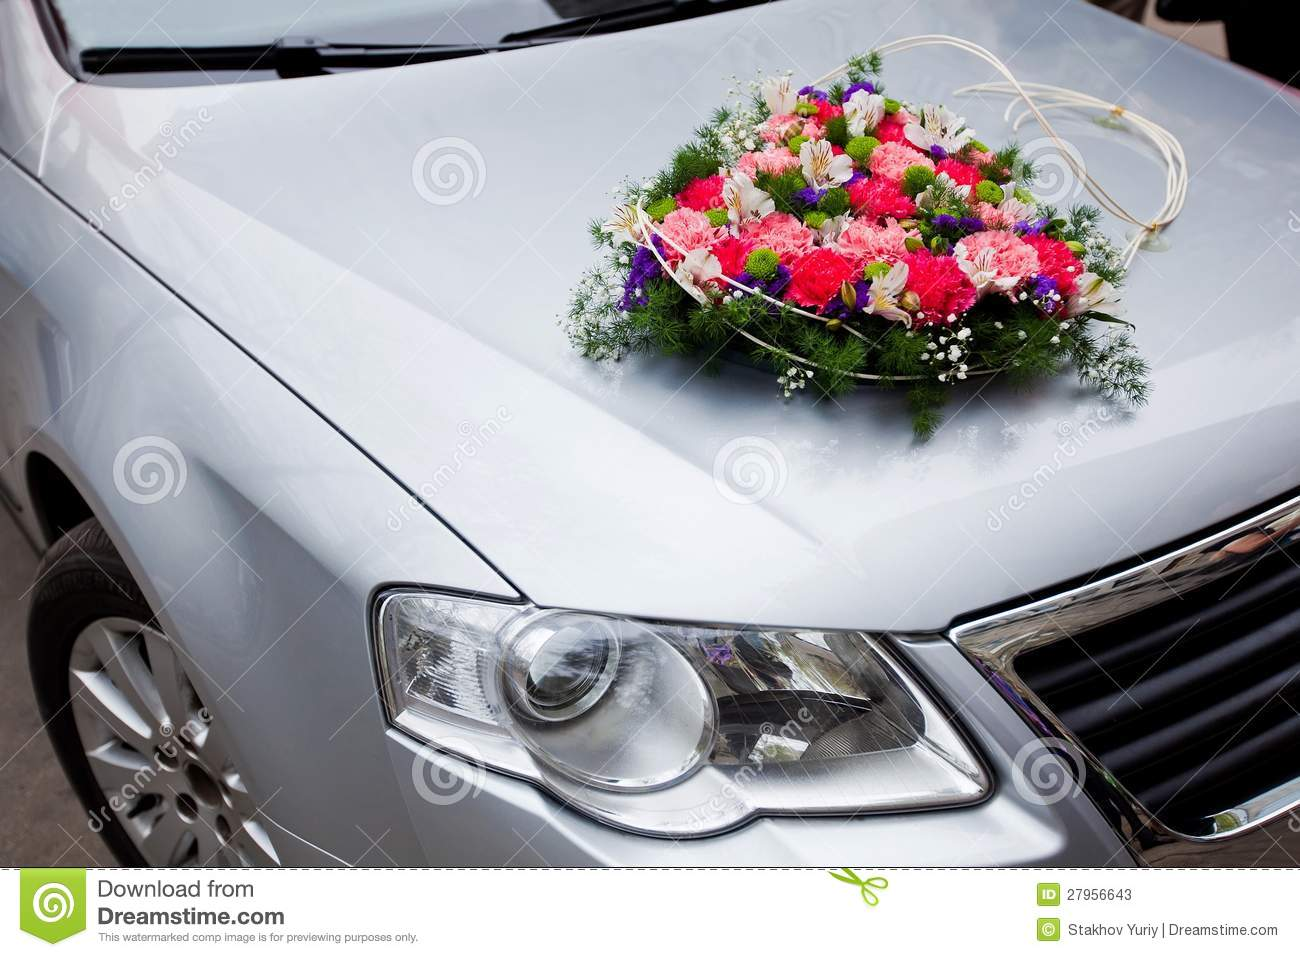 Wedding car decoration with flowers stock photos image for Automotive decoration